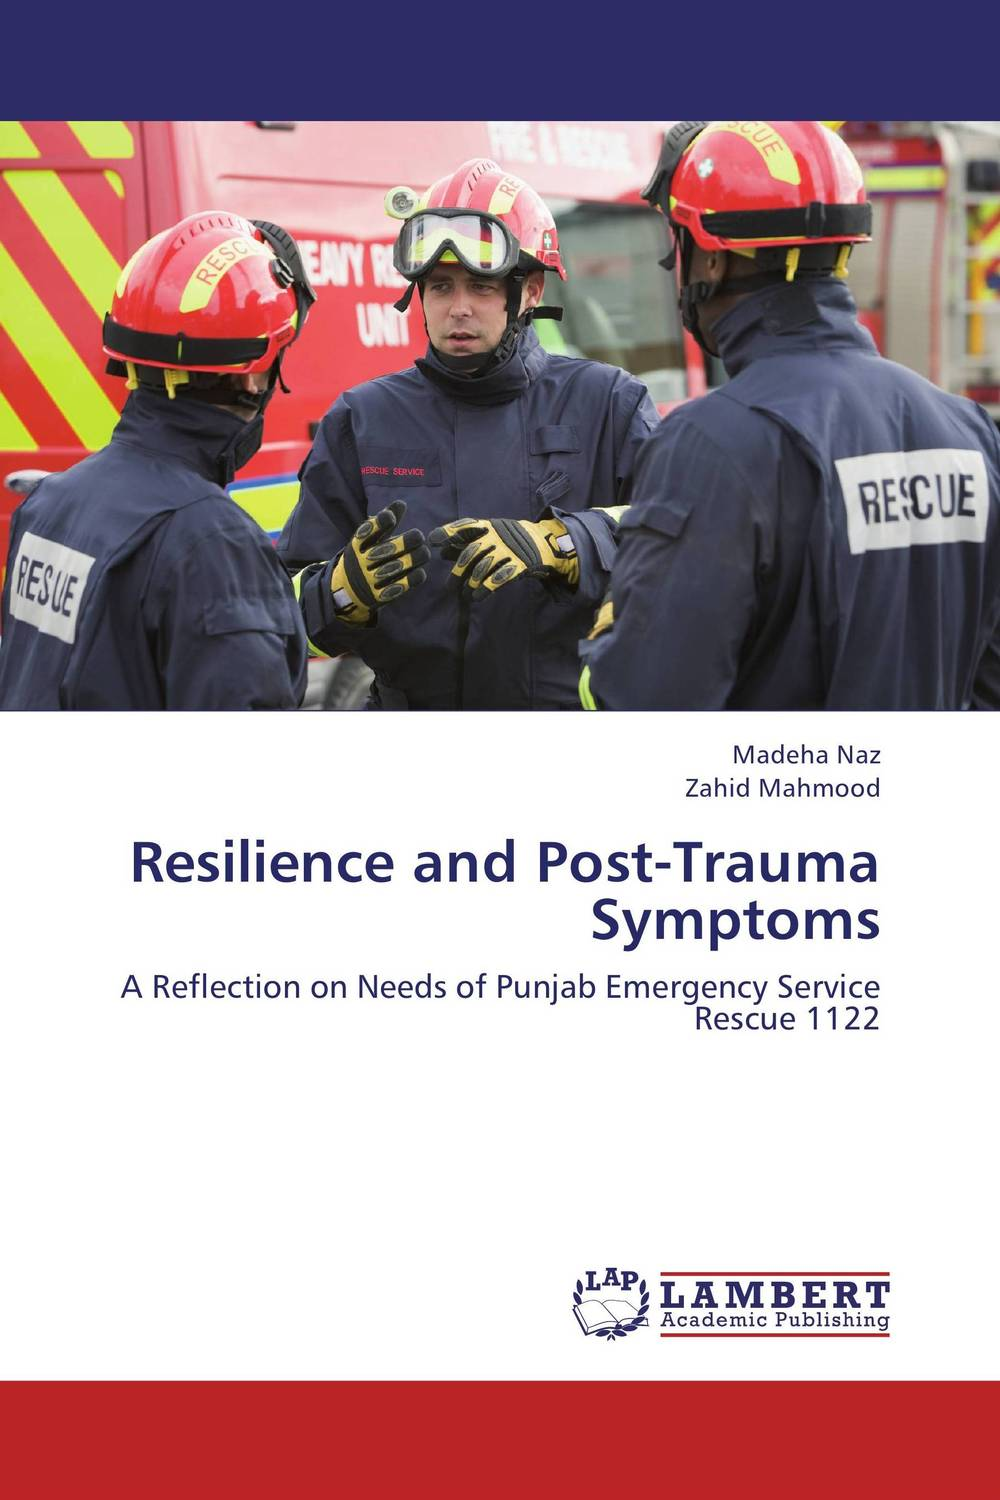 Resilience and Post-Trauma Symptoms